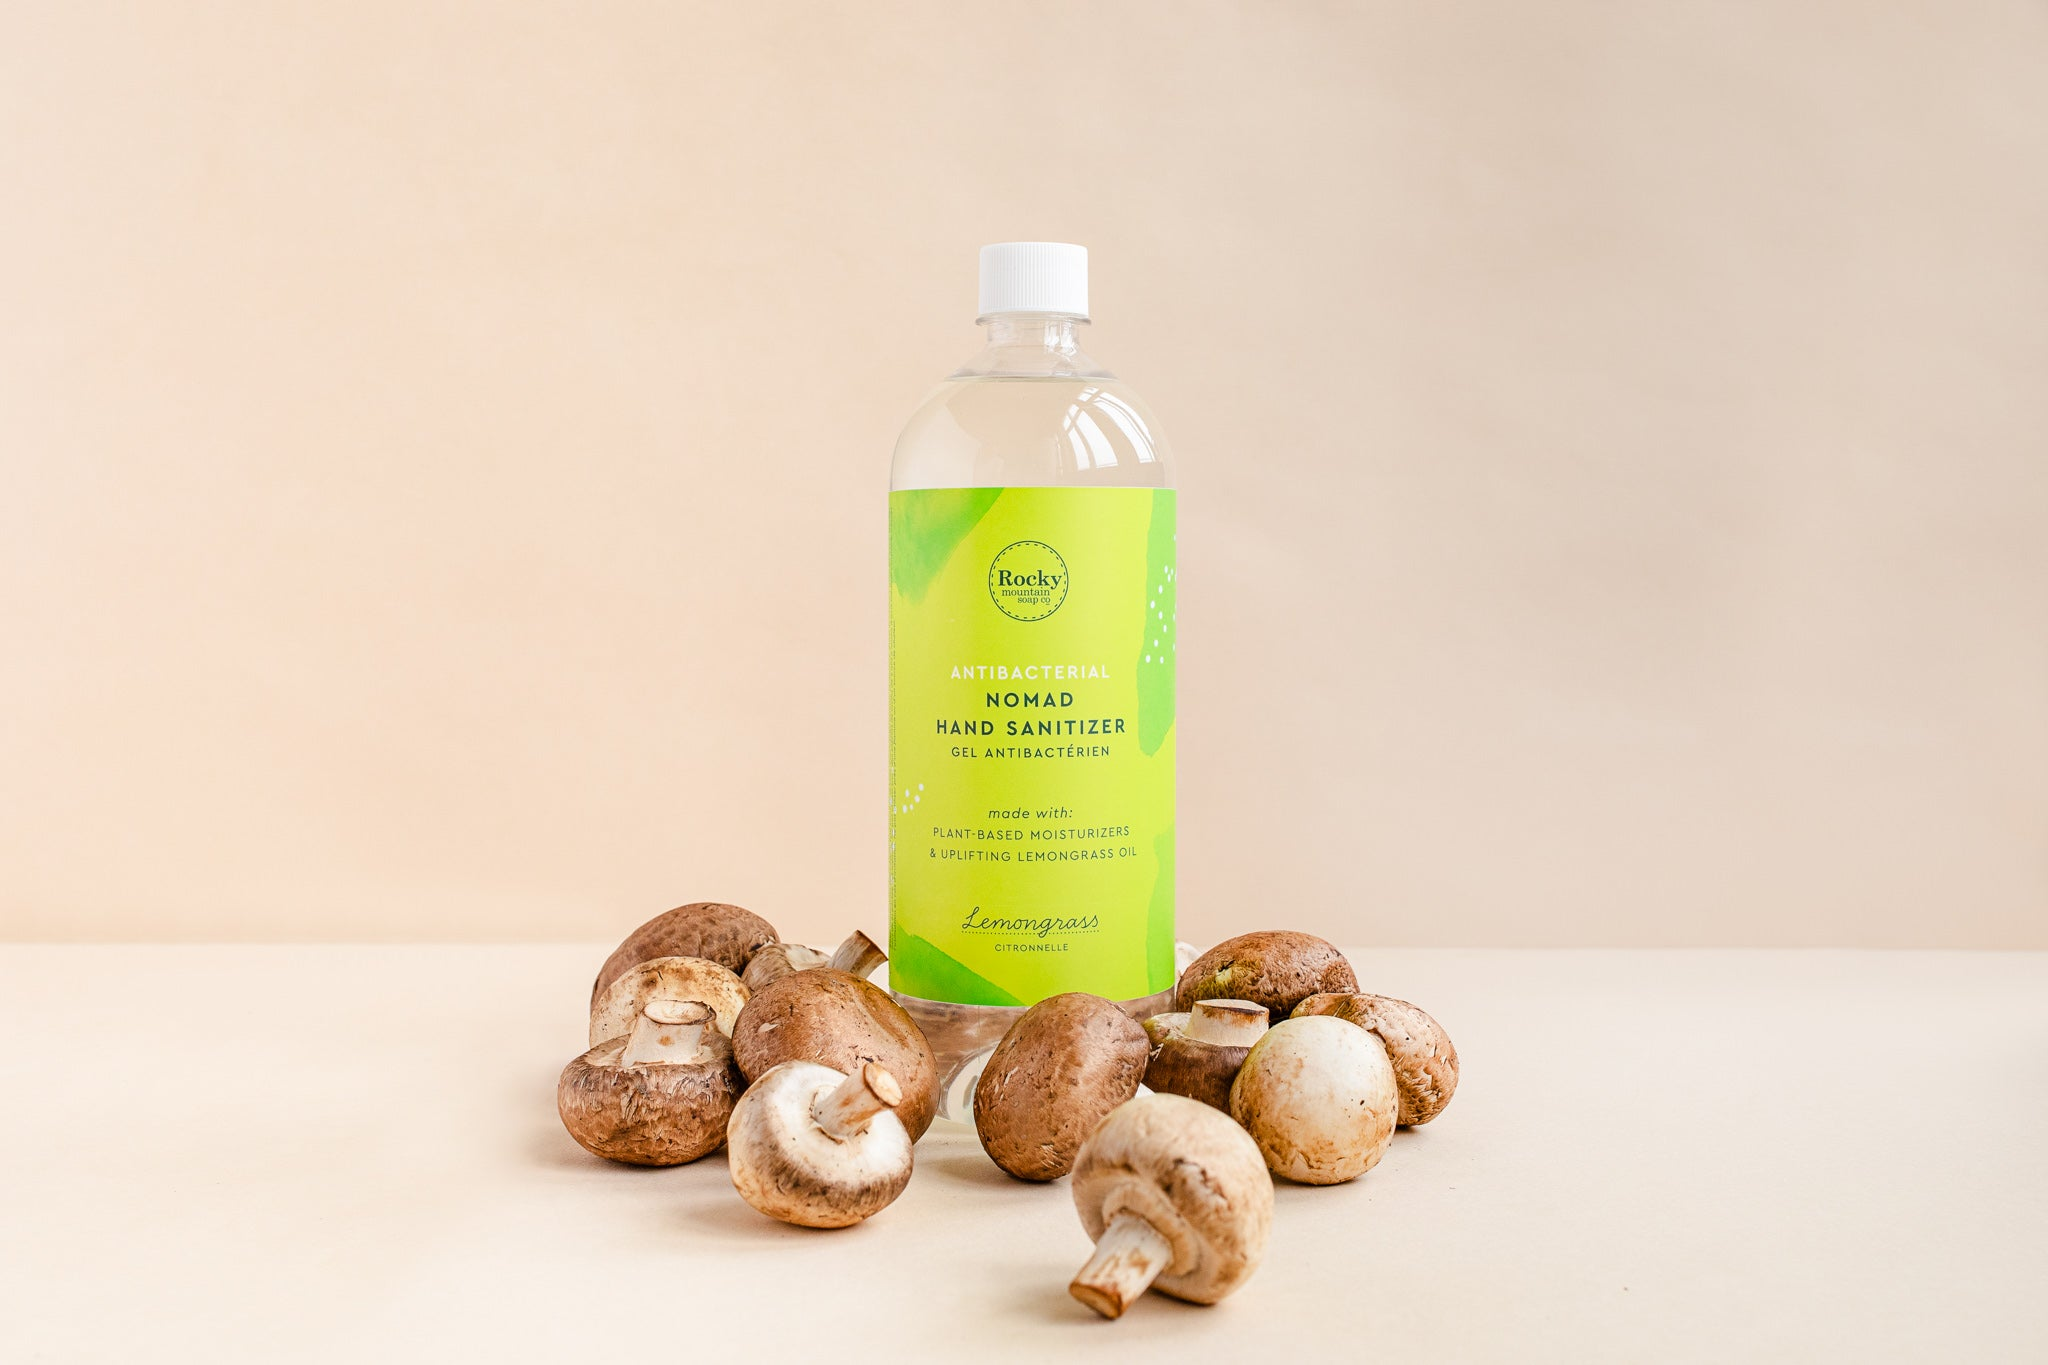 Image of 1 litre hand sanitizer surrounded by mushrooms.